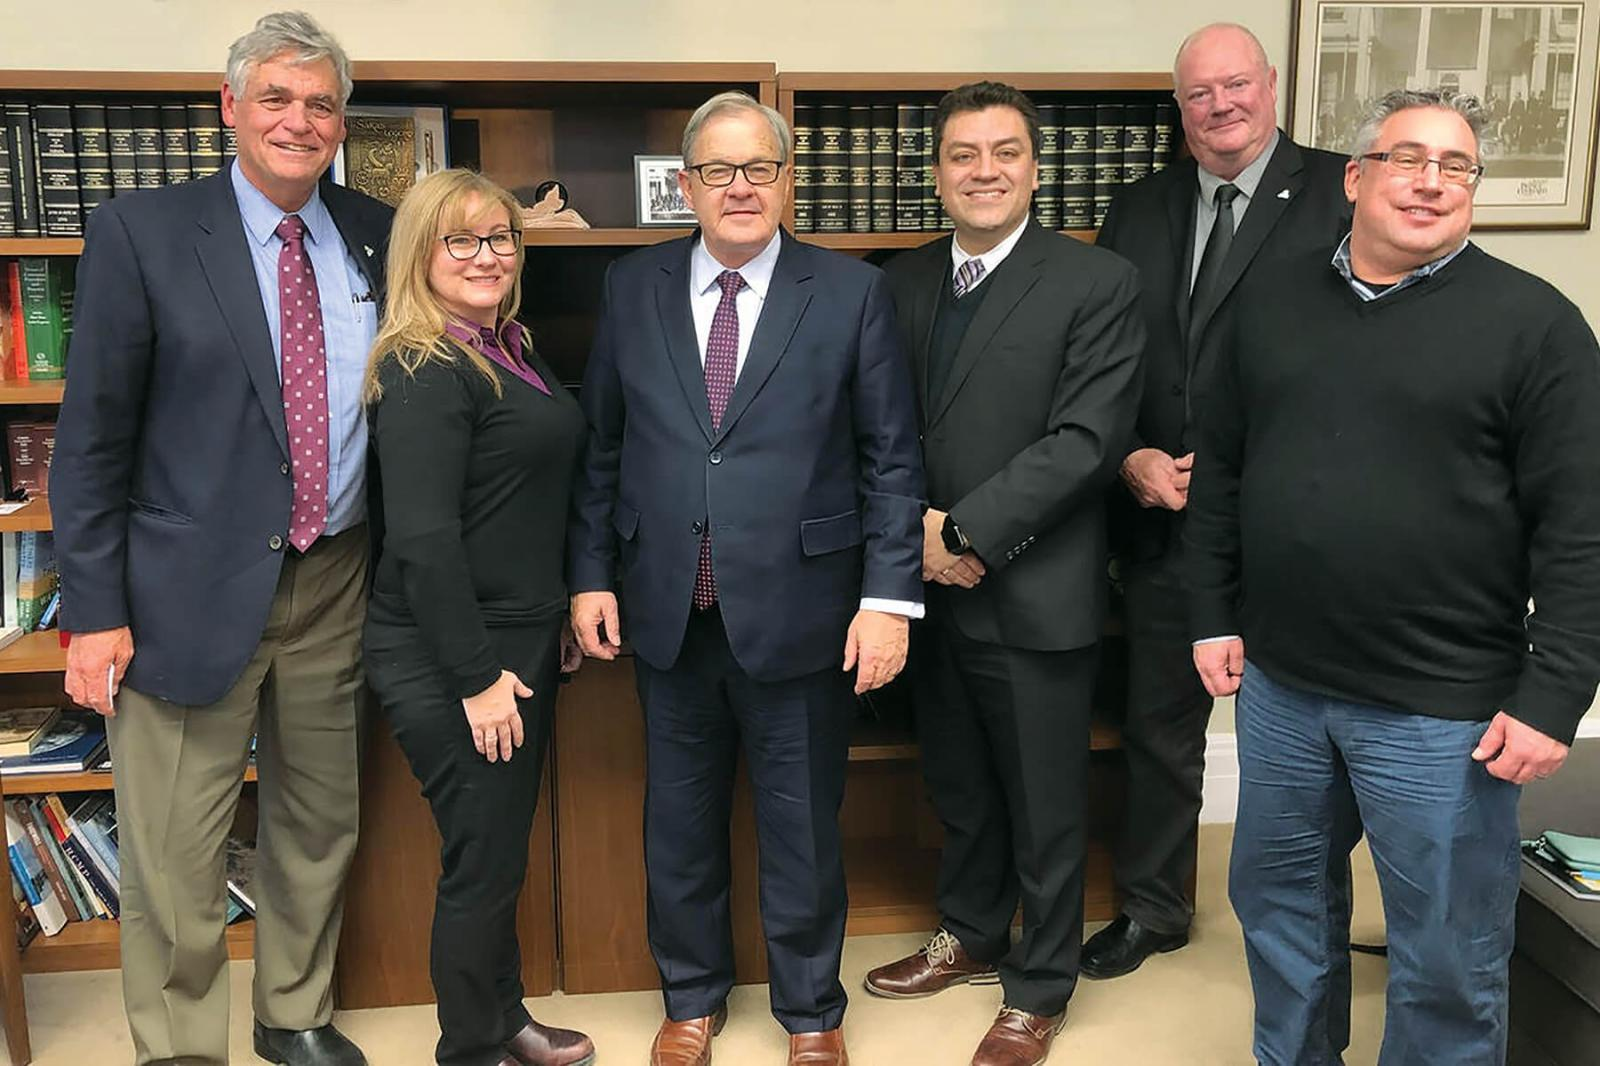 The CNLA delegation made valuable Parliament Hill connections on behalf of members in December. Pictured left to right are Bill Stensson; Leslie Sison; Minister, Lawrence MacAulay; Victor Santacruz; Bill Hardy and Ron Ross.